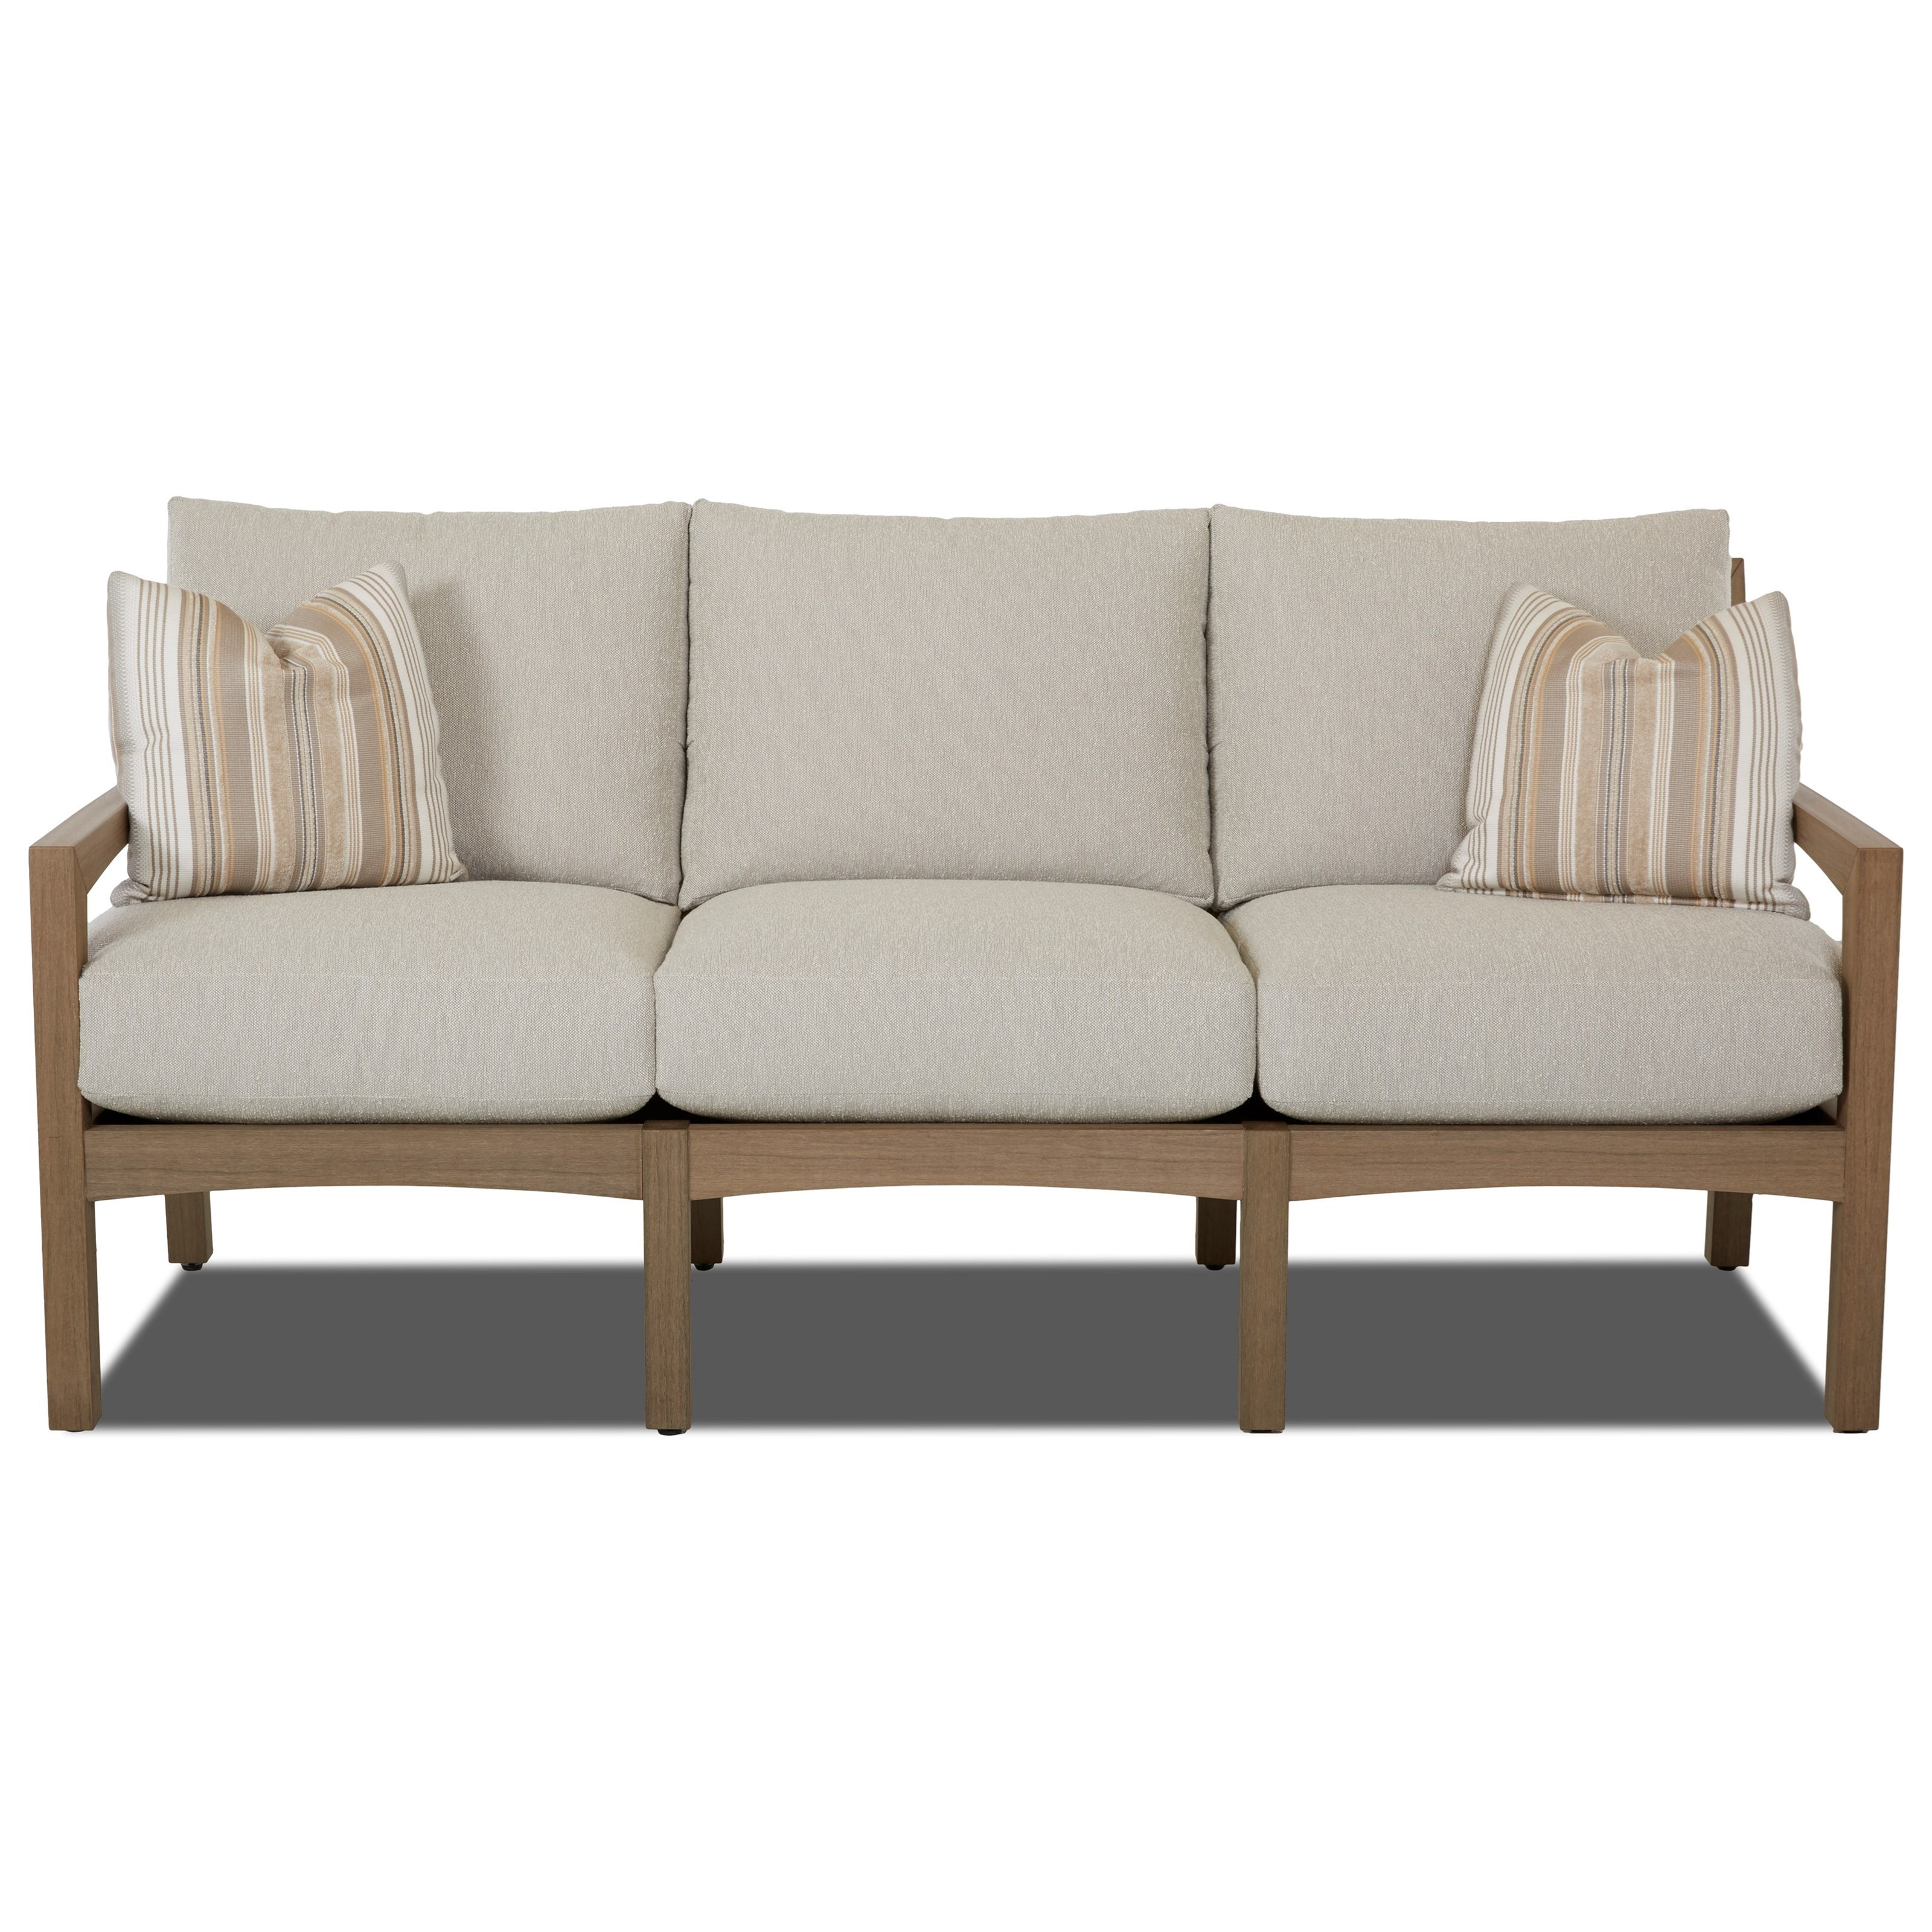 Klaussner Outdoor Delray W8502 Sdr Outdoor Sofa With Drainable Cushions Hudson 39 S Furniture